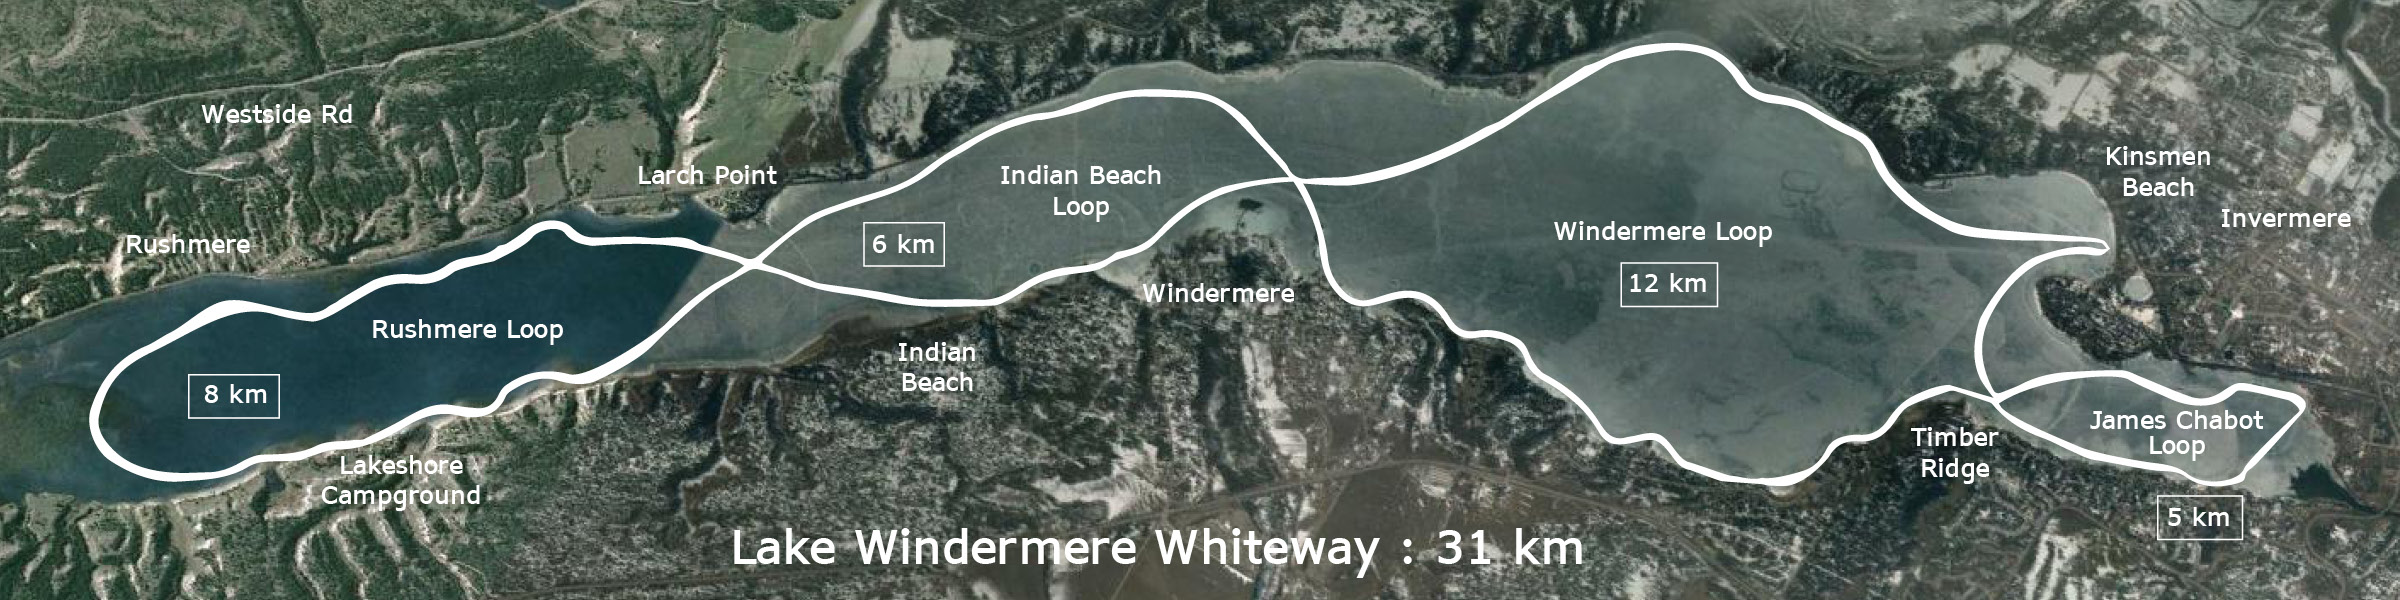 Lake Windermere Whiteway - map